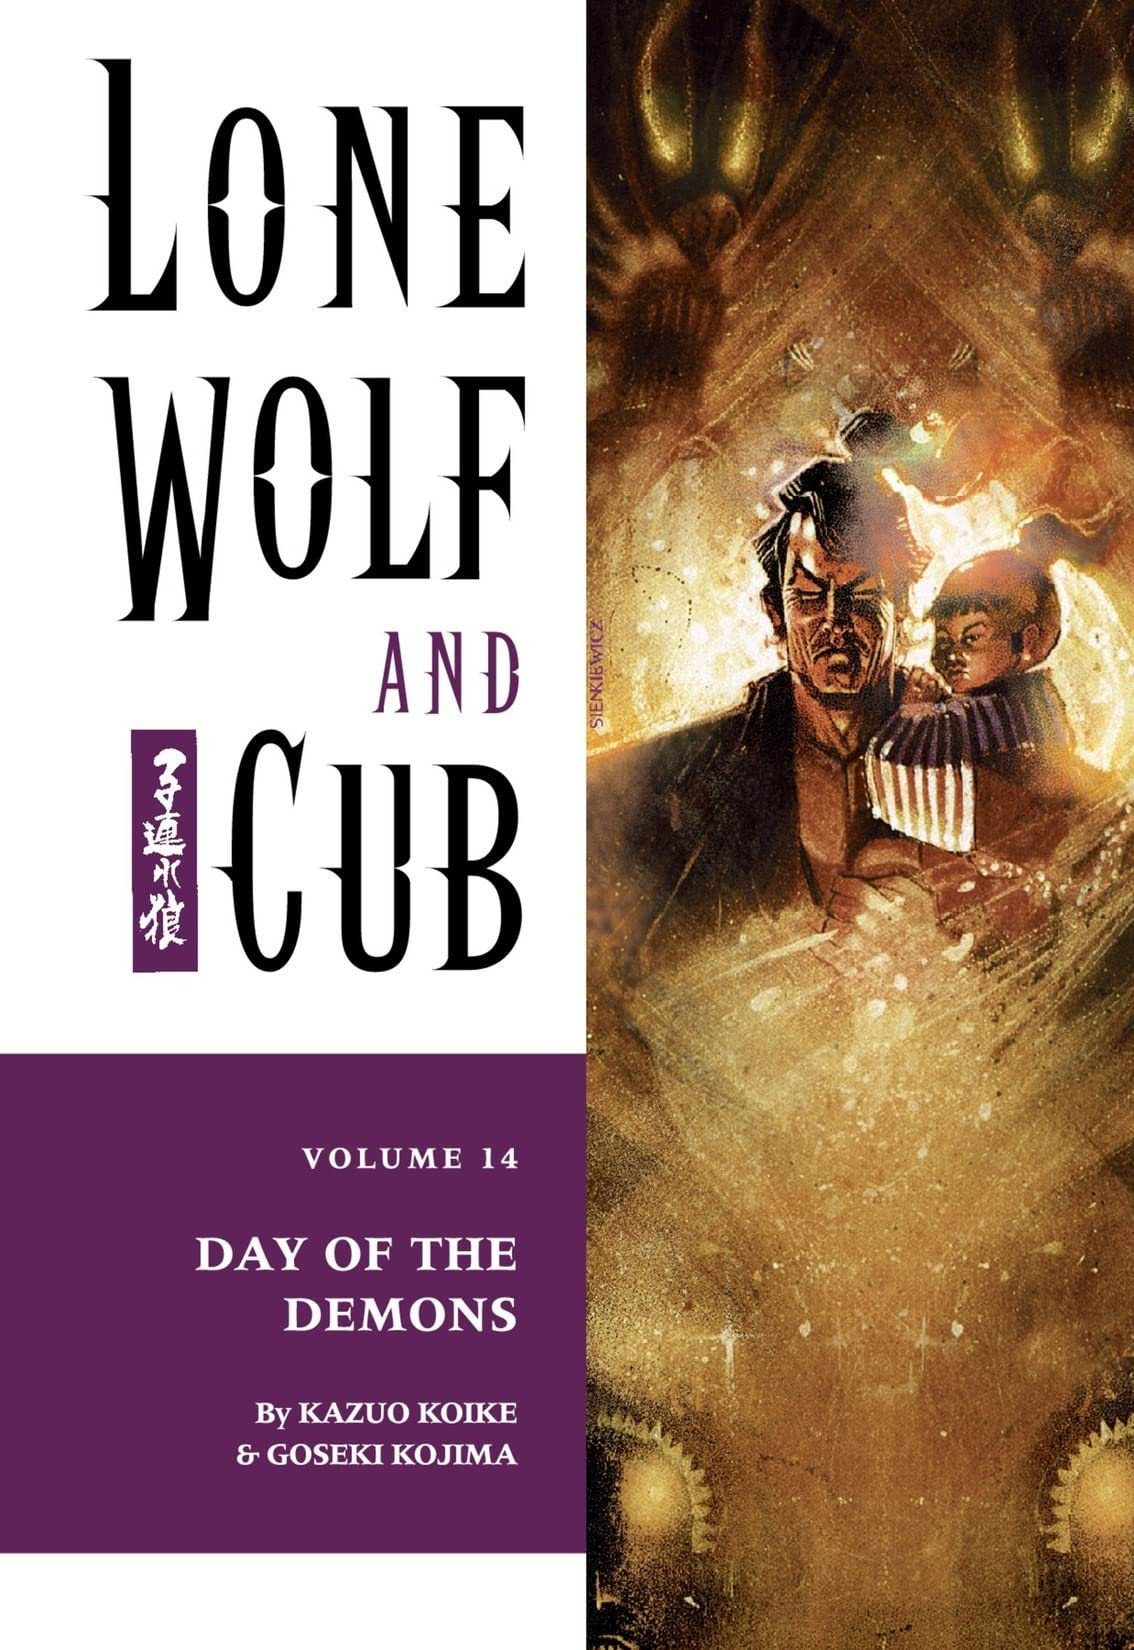 Lone Wolf and Cub Vol. 14: Day of the Demons